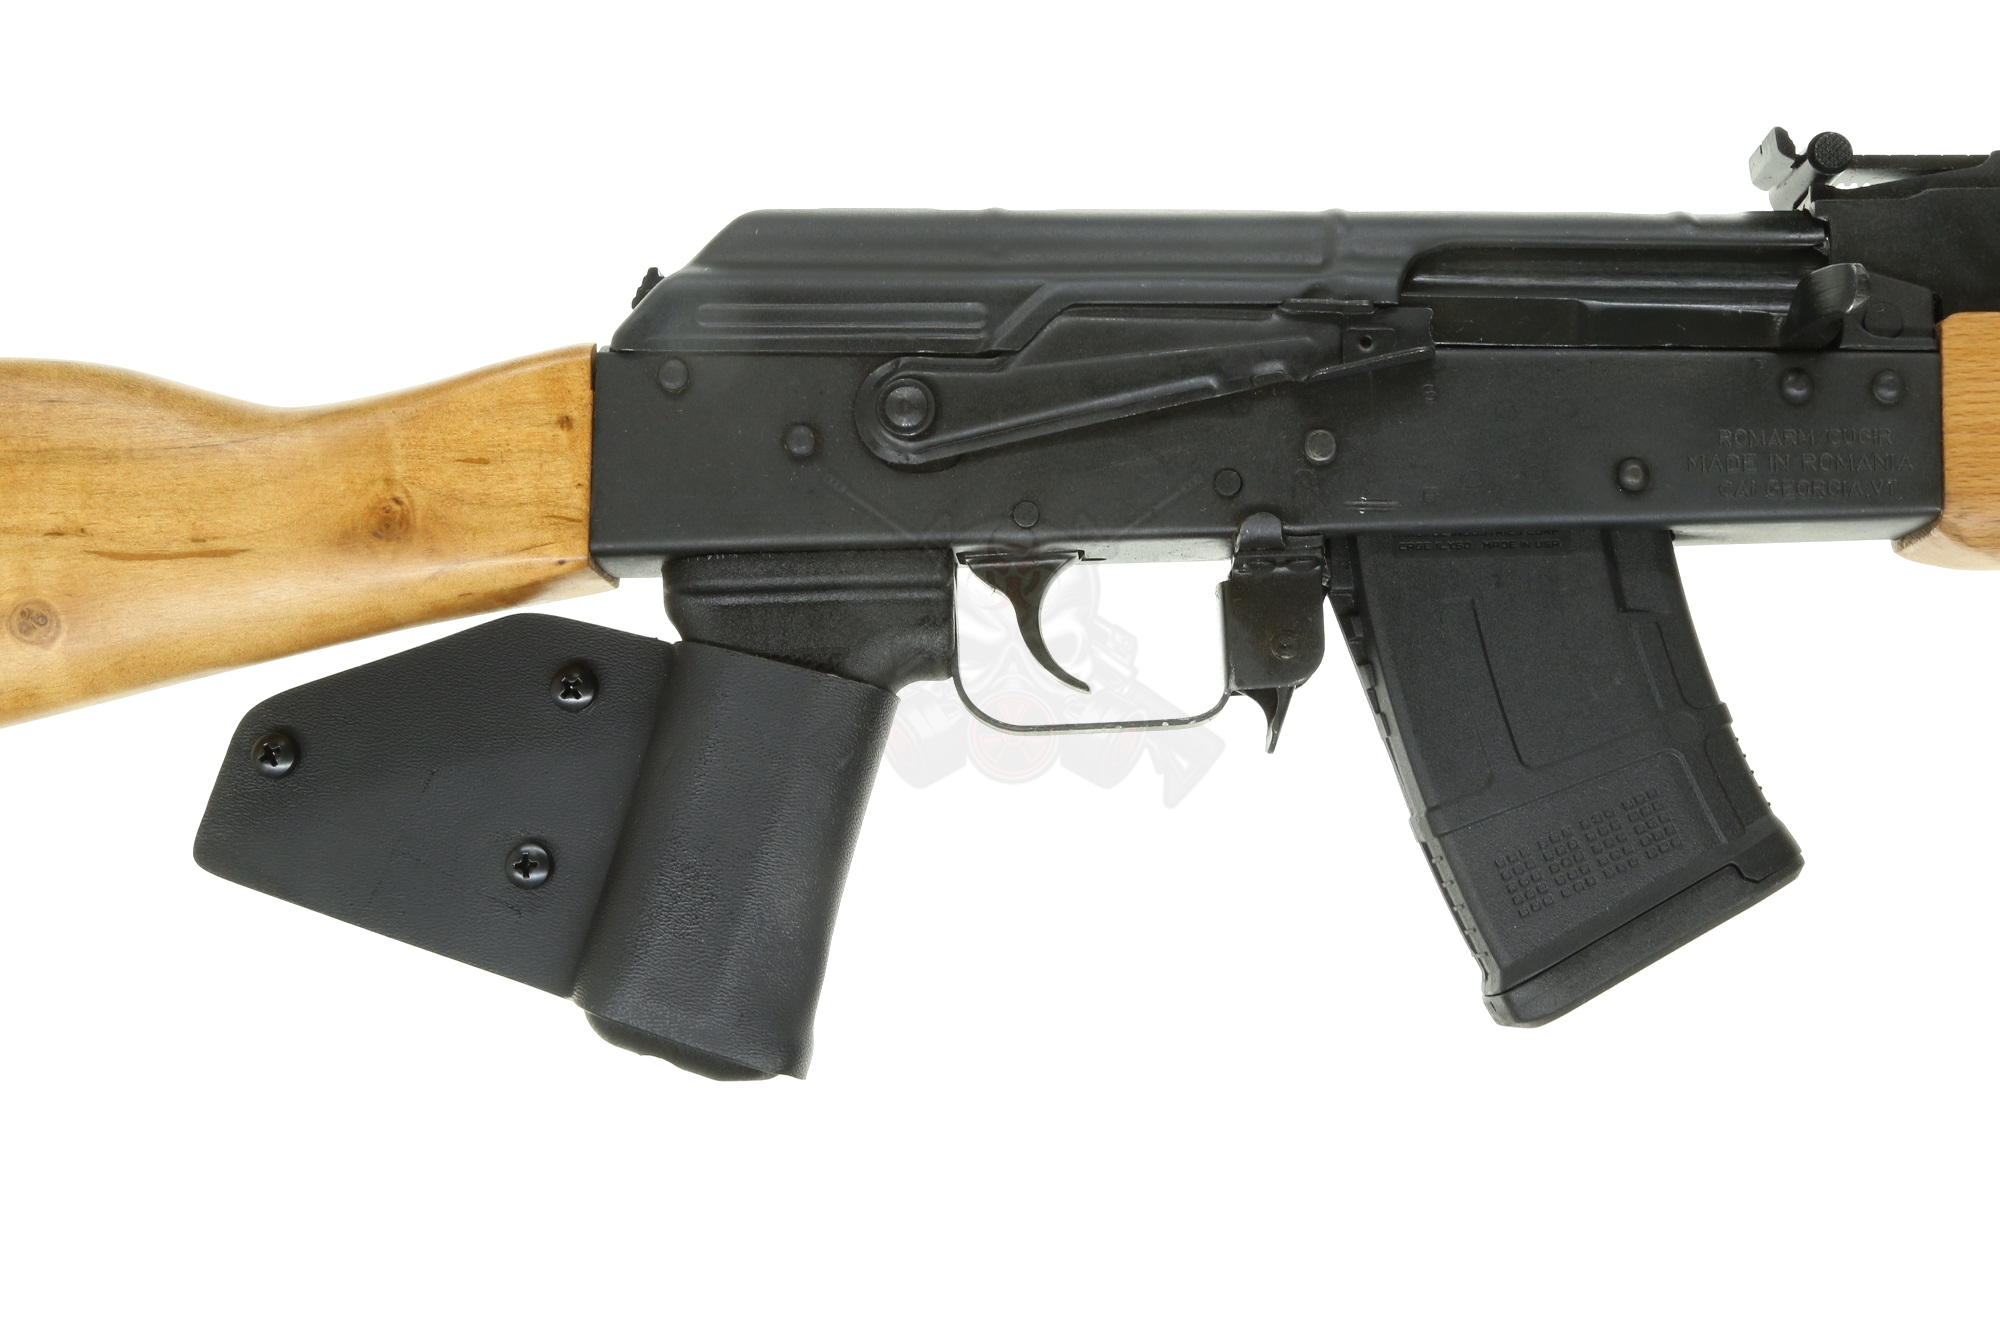 Century Arms WASR10 CA LEGAL AK47 Rifle 7 62x39 Wood Stock & installed Grip  Wrap (1) 10rd mag - FEATURELESS